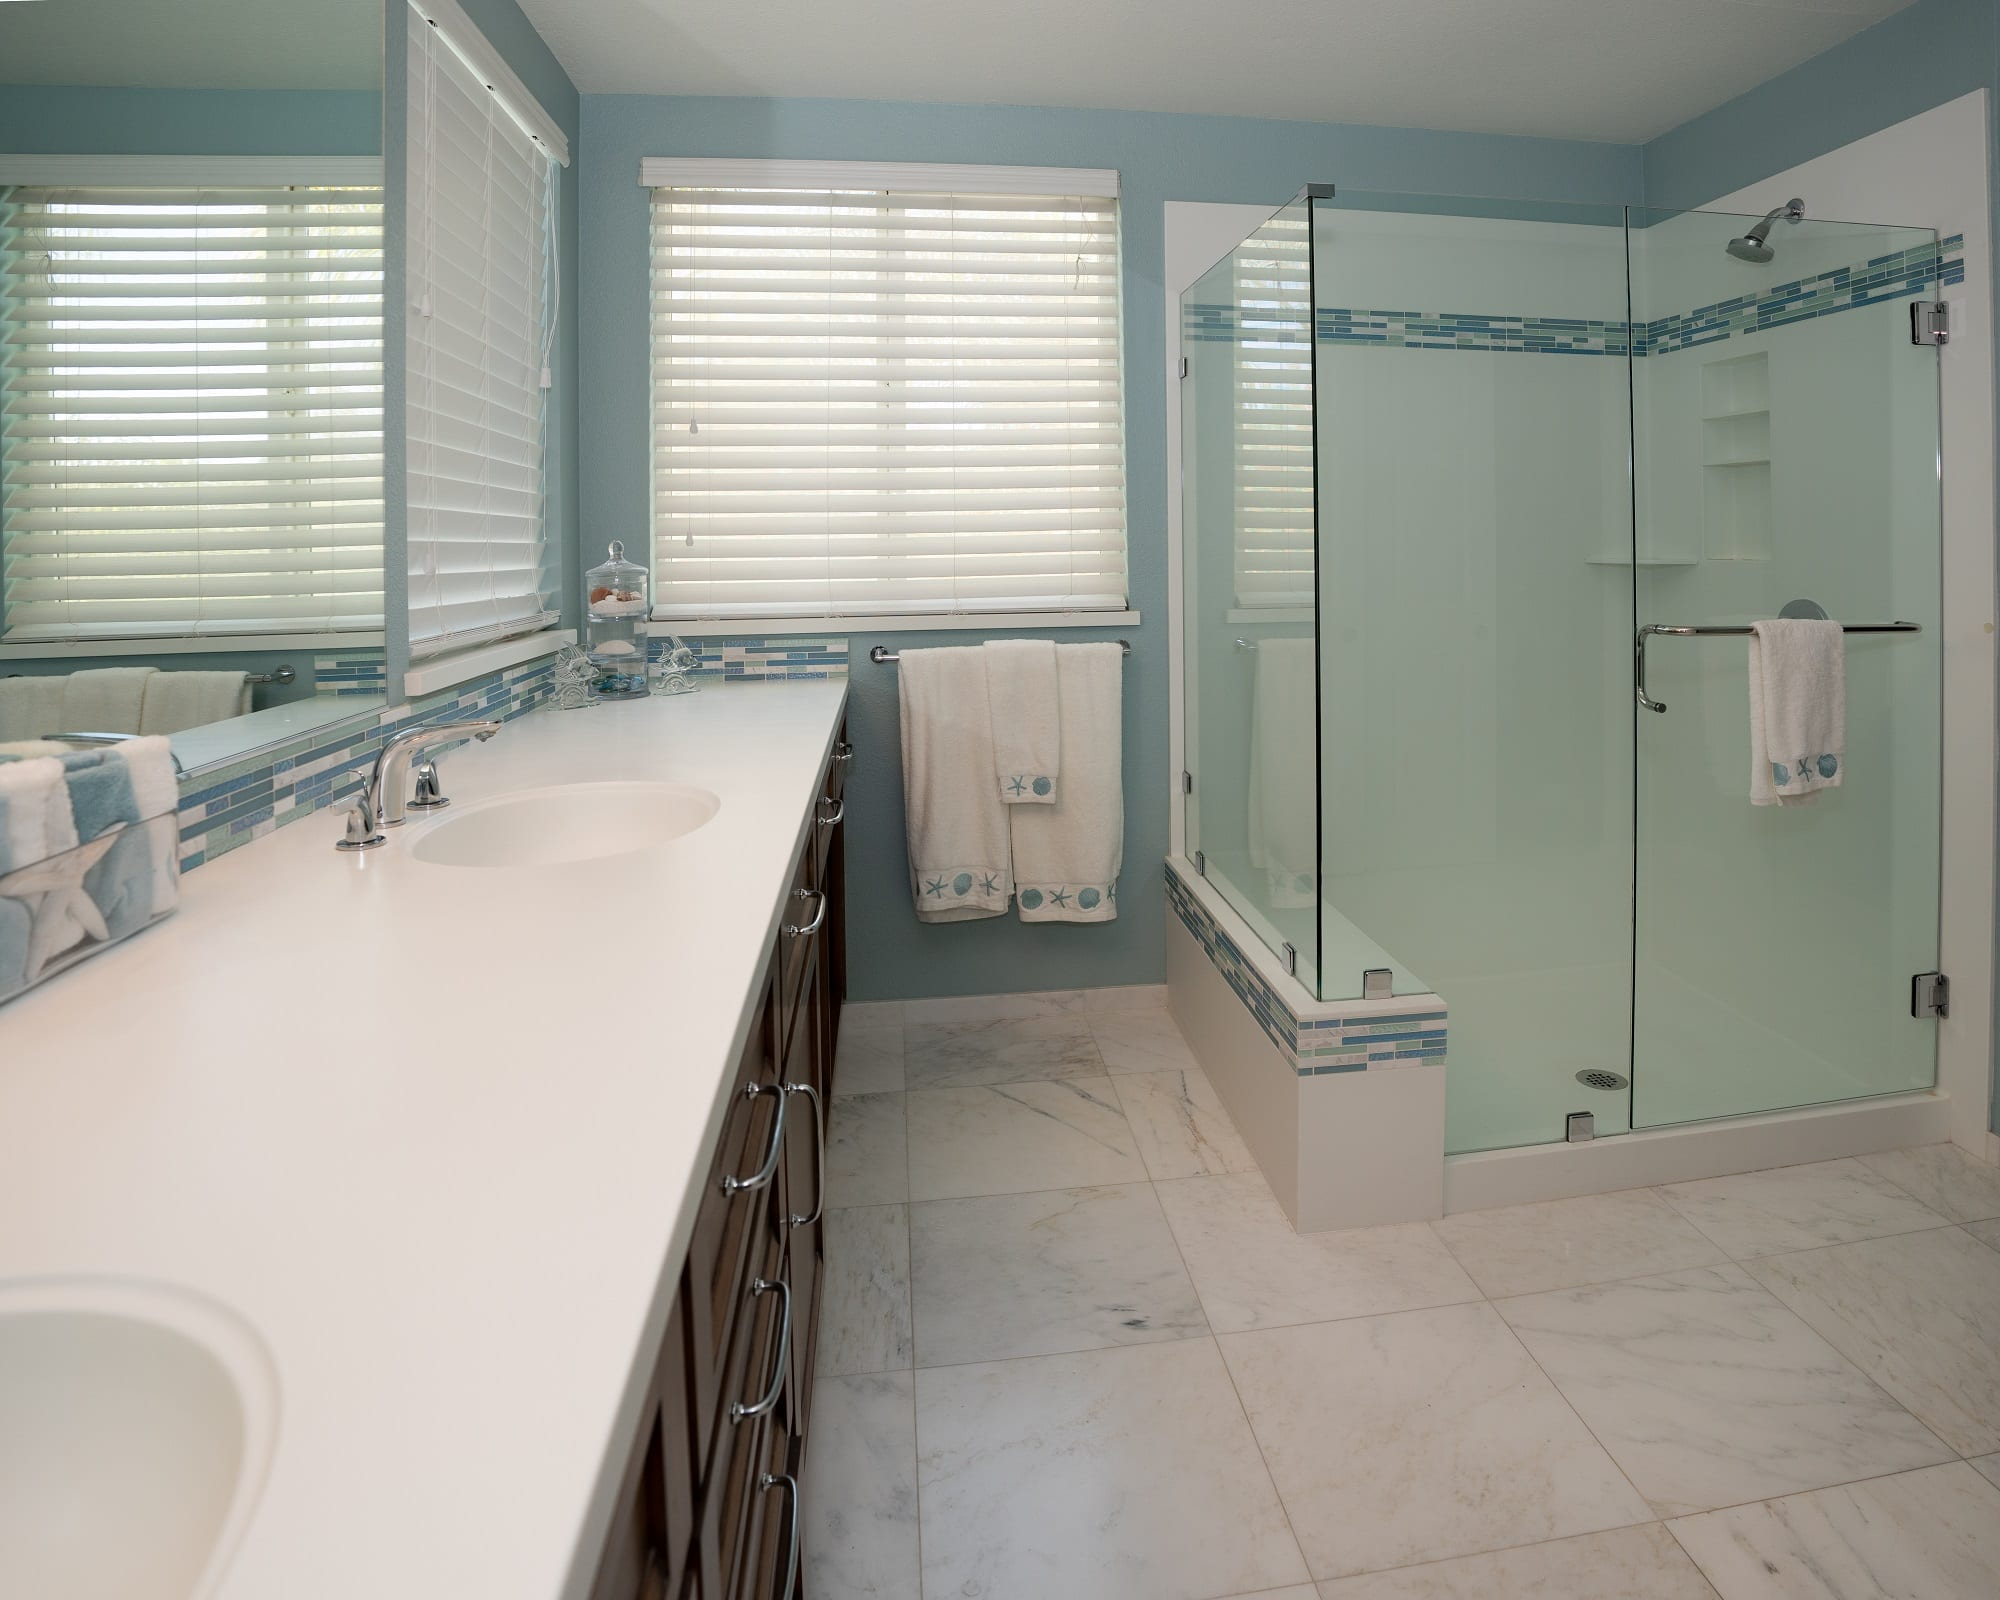 Photo of bathroom with Signature Surfaces shower and countertops